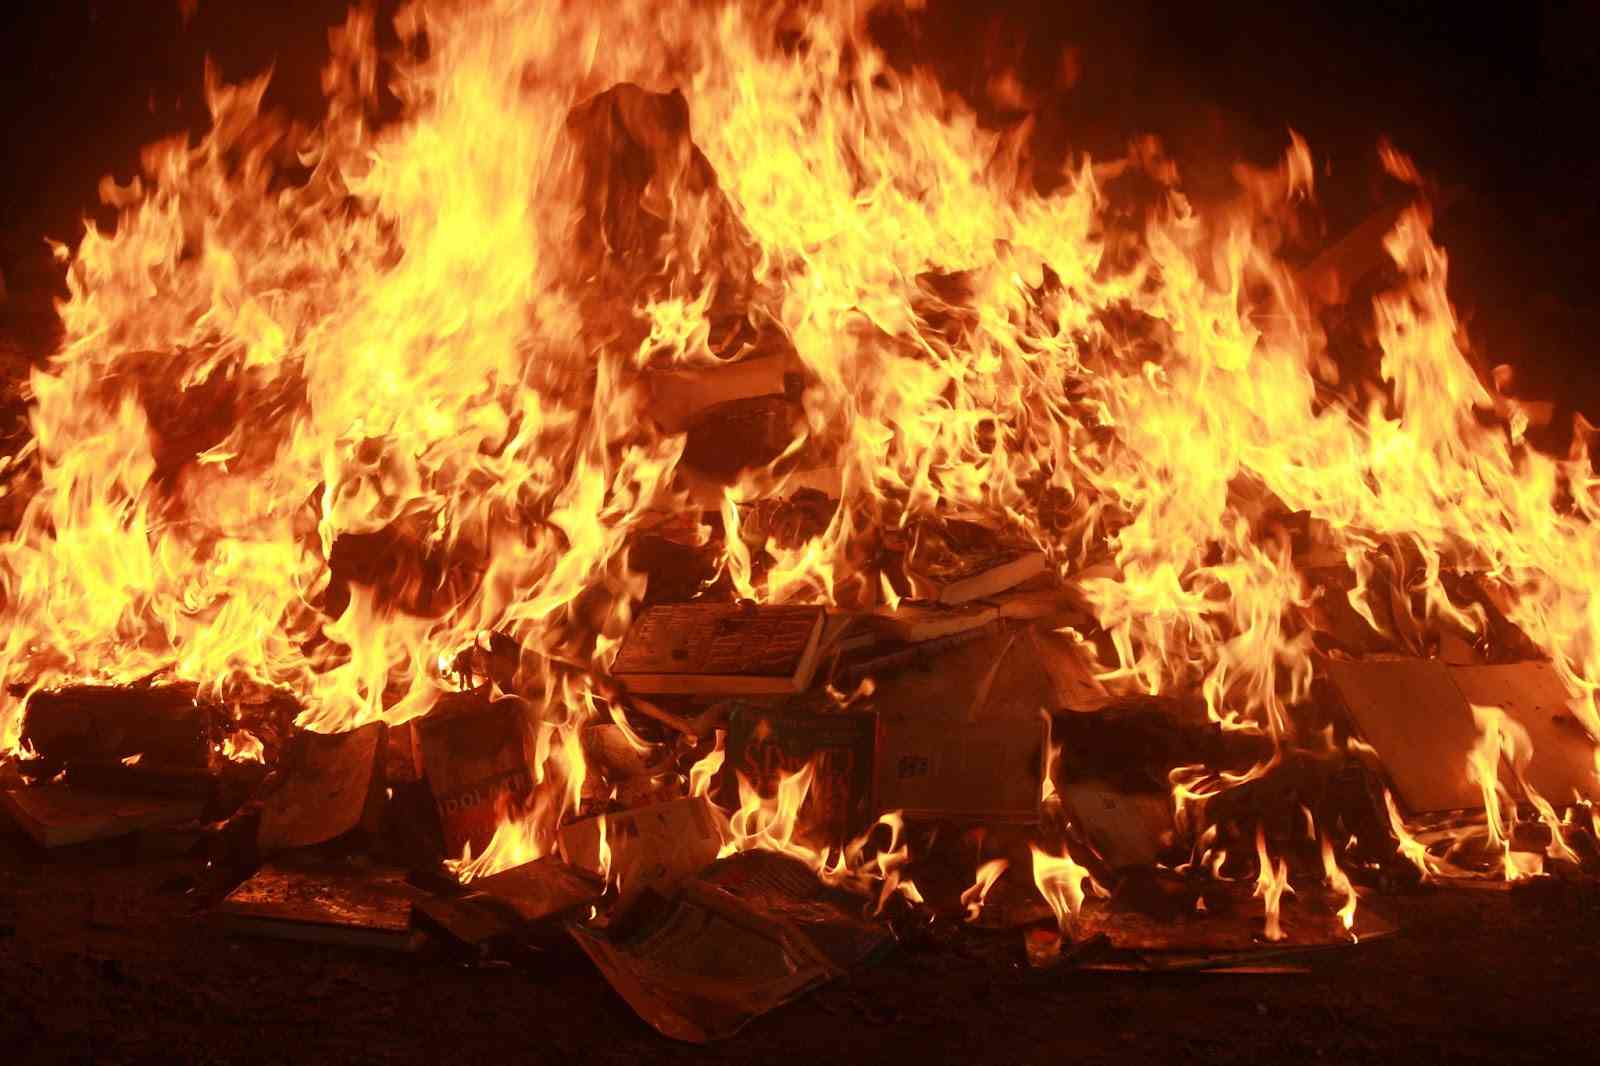 churches burning books Come to our halloween book burning we are burning satan's bibles like the niv, rsv, nkjv, tlb, nasb, nev, nrsv, asv, nwt, good news for modern man, the evidence bible, the message bible, the green bible, ect these are perversions of god's word the king james bible we will also be burning.